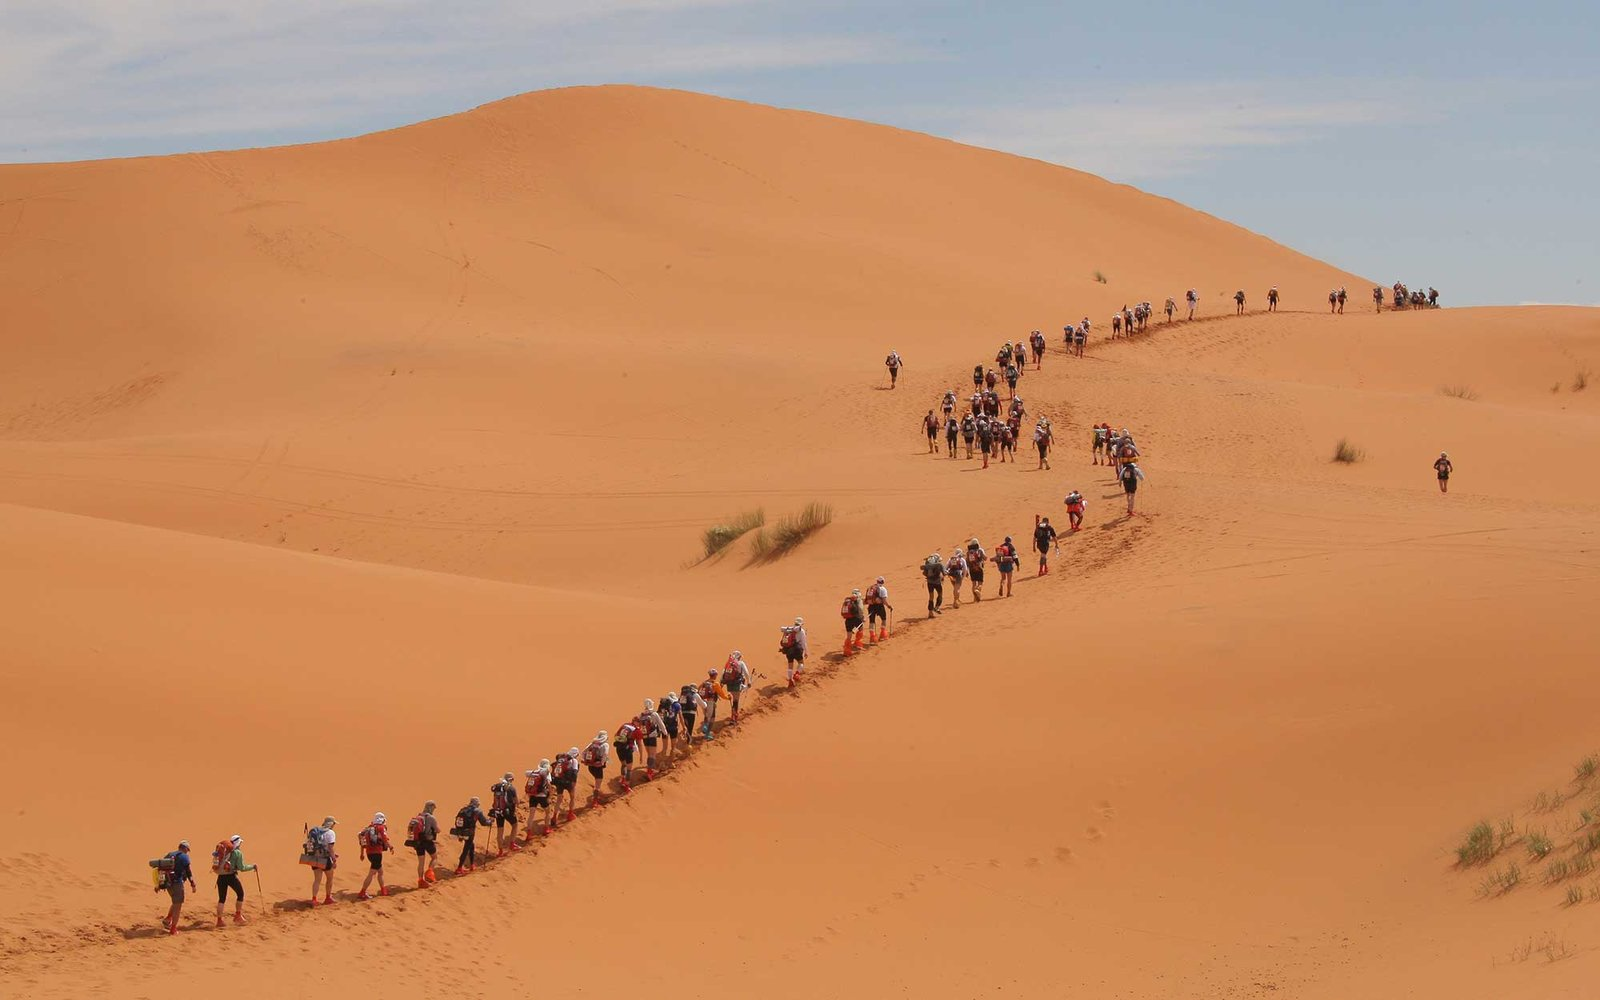 A long file of competitors take the start of the 24th Marathon des Sables in the Sahara desert, on March 30, 2009 climbing the first dunes of Merzouga, some 300 kilometres south of Ouarzazate in Morocco, a day late due to heavy rain last week. The first s